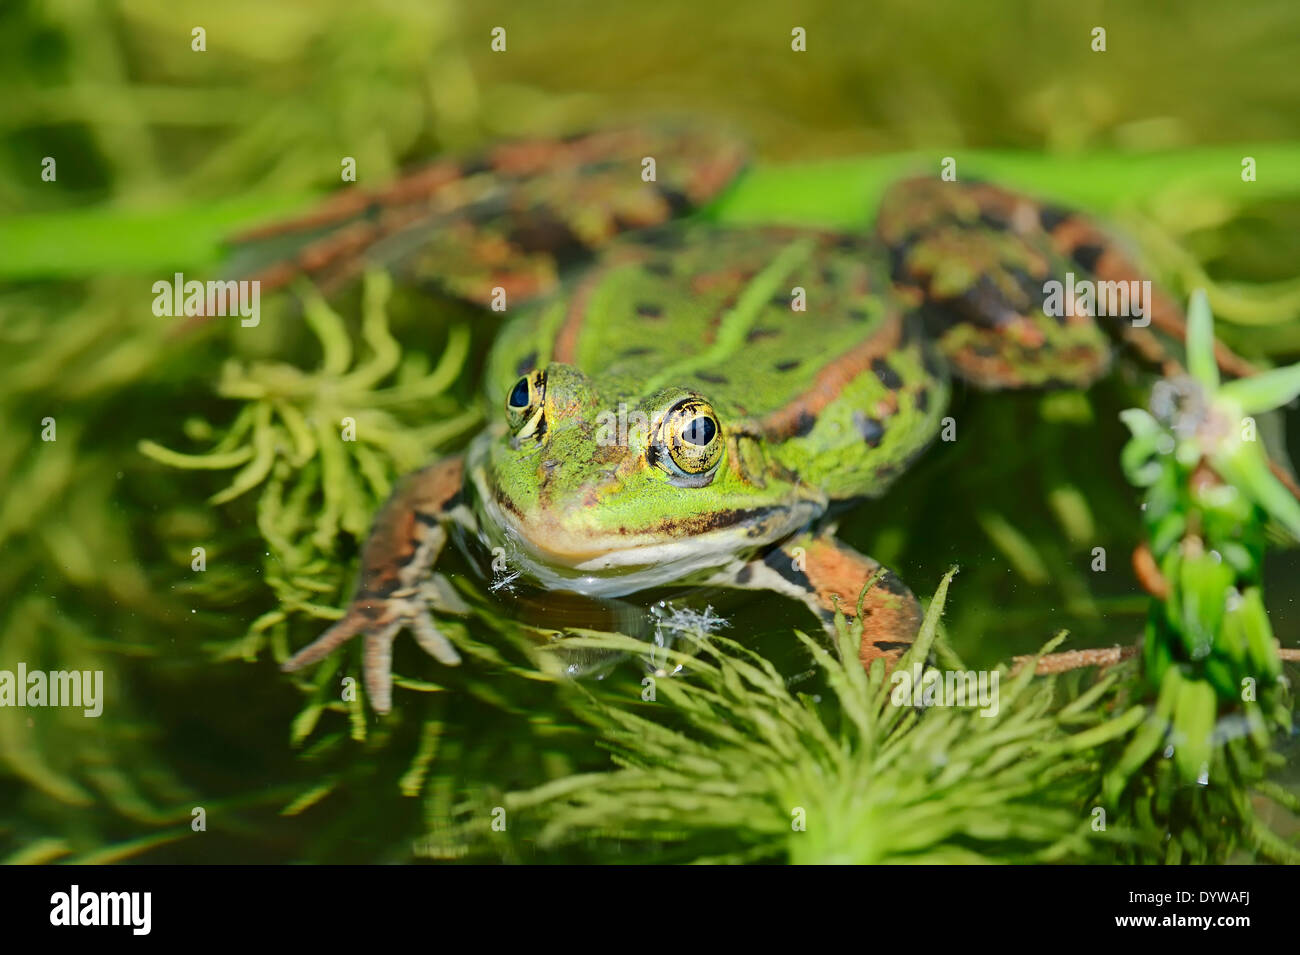 Edible Frog, Common Water Frog or Green Frog (Rana esculenta, Pelophylax kl. esculentus), male, North Rhine-Westphalia, Germany - Stock Image